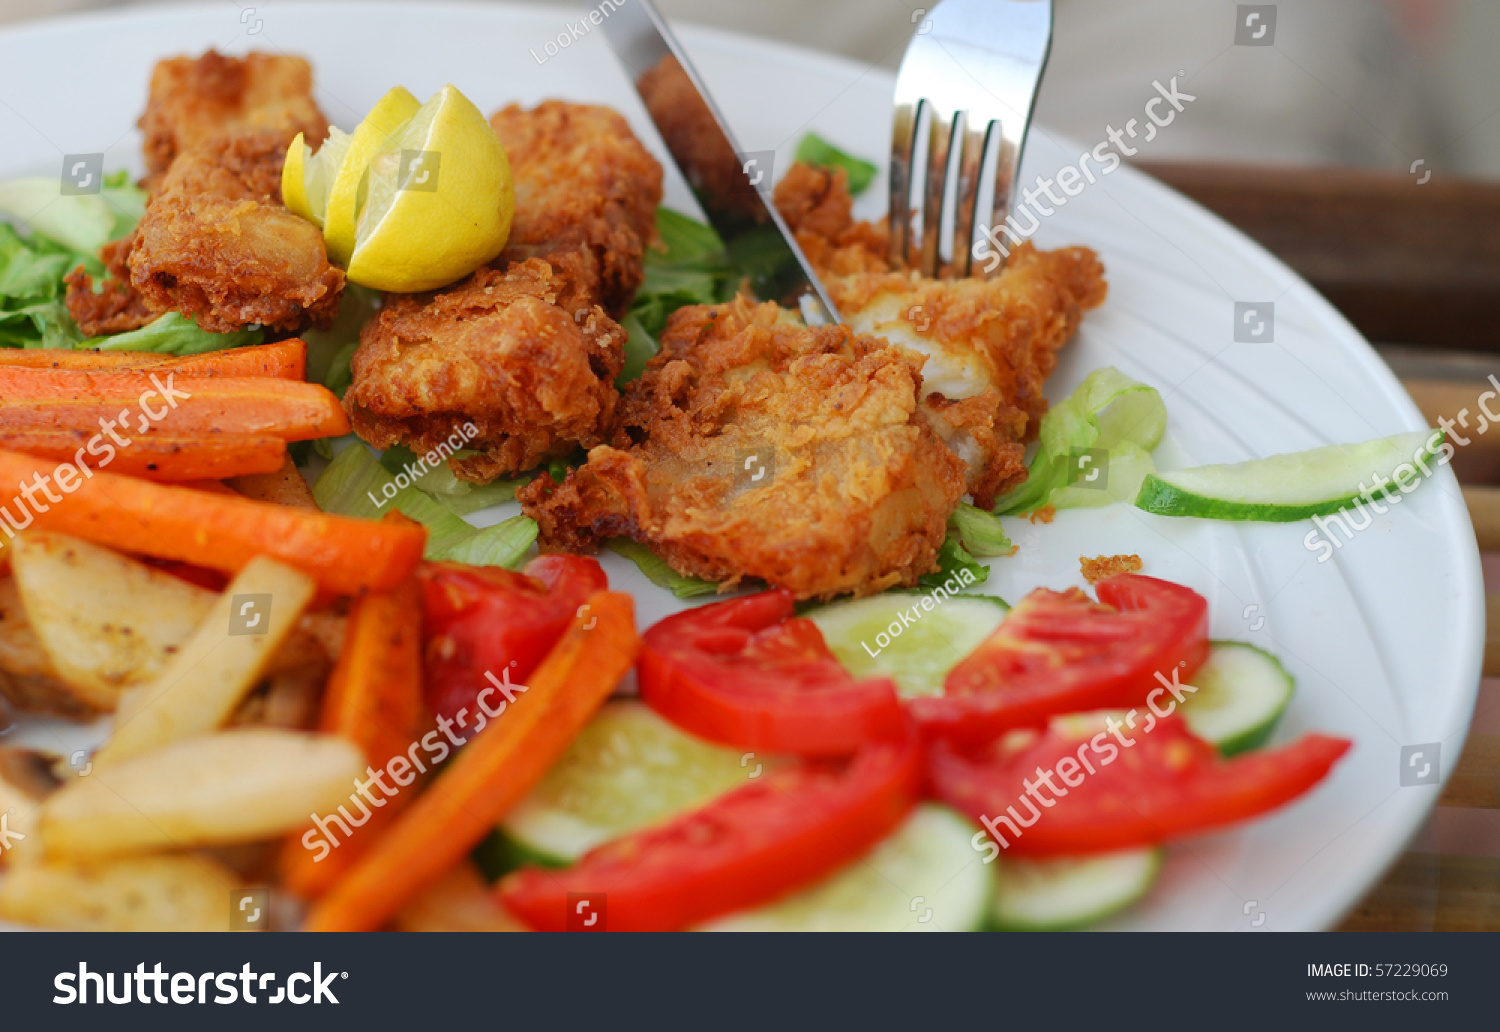 Fried fish with vegetables stock photo 57229069 shutterstock for What vegetables go with fish